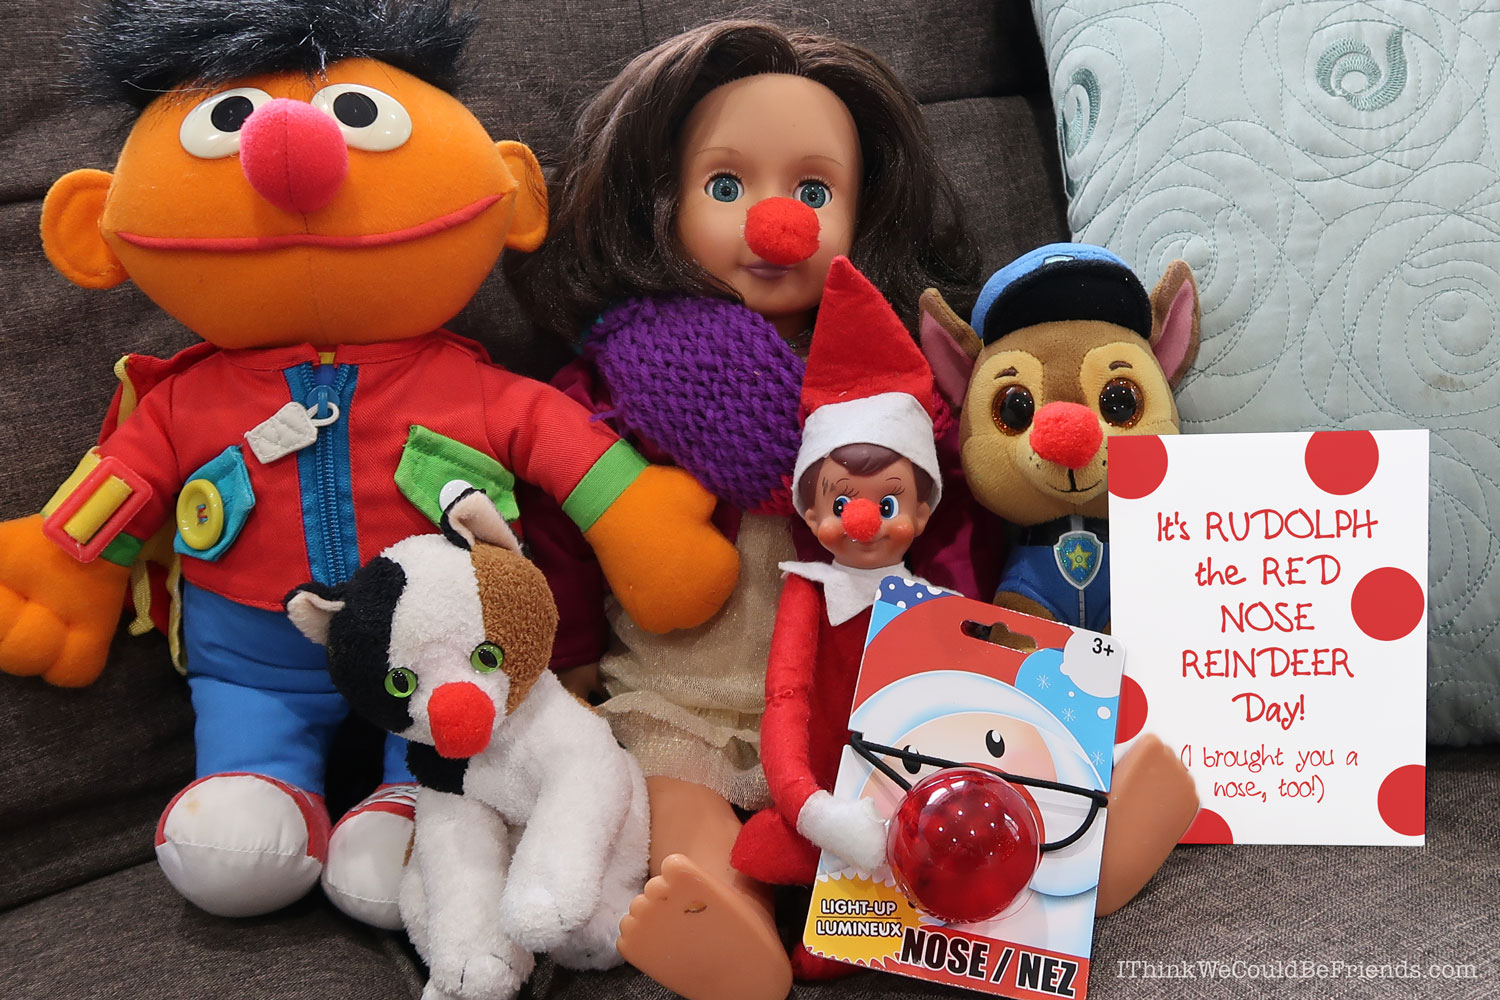 55 New Elf On The Shelf Ideas 37 Rudolph Noses